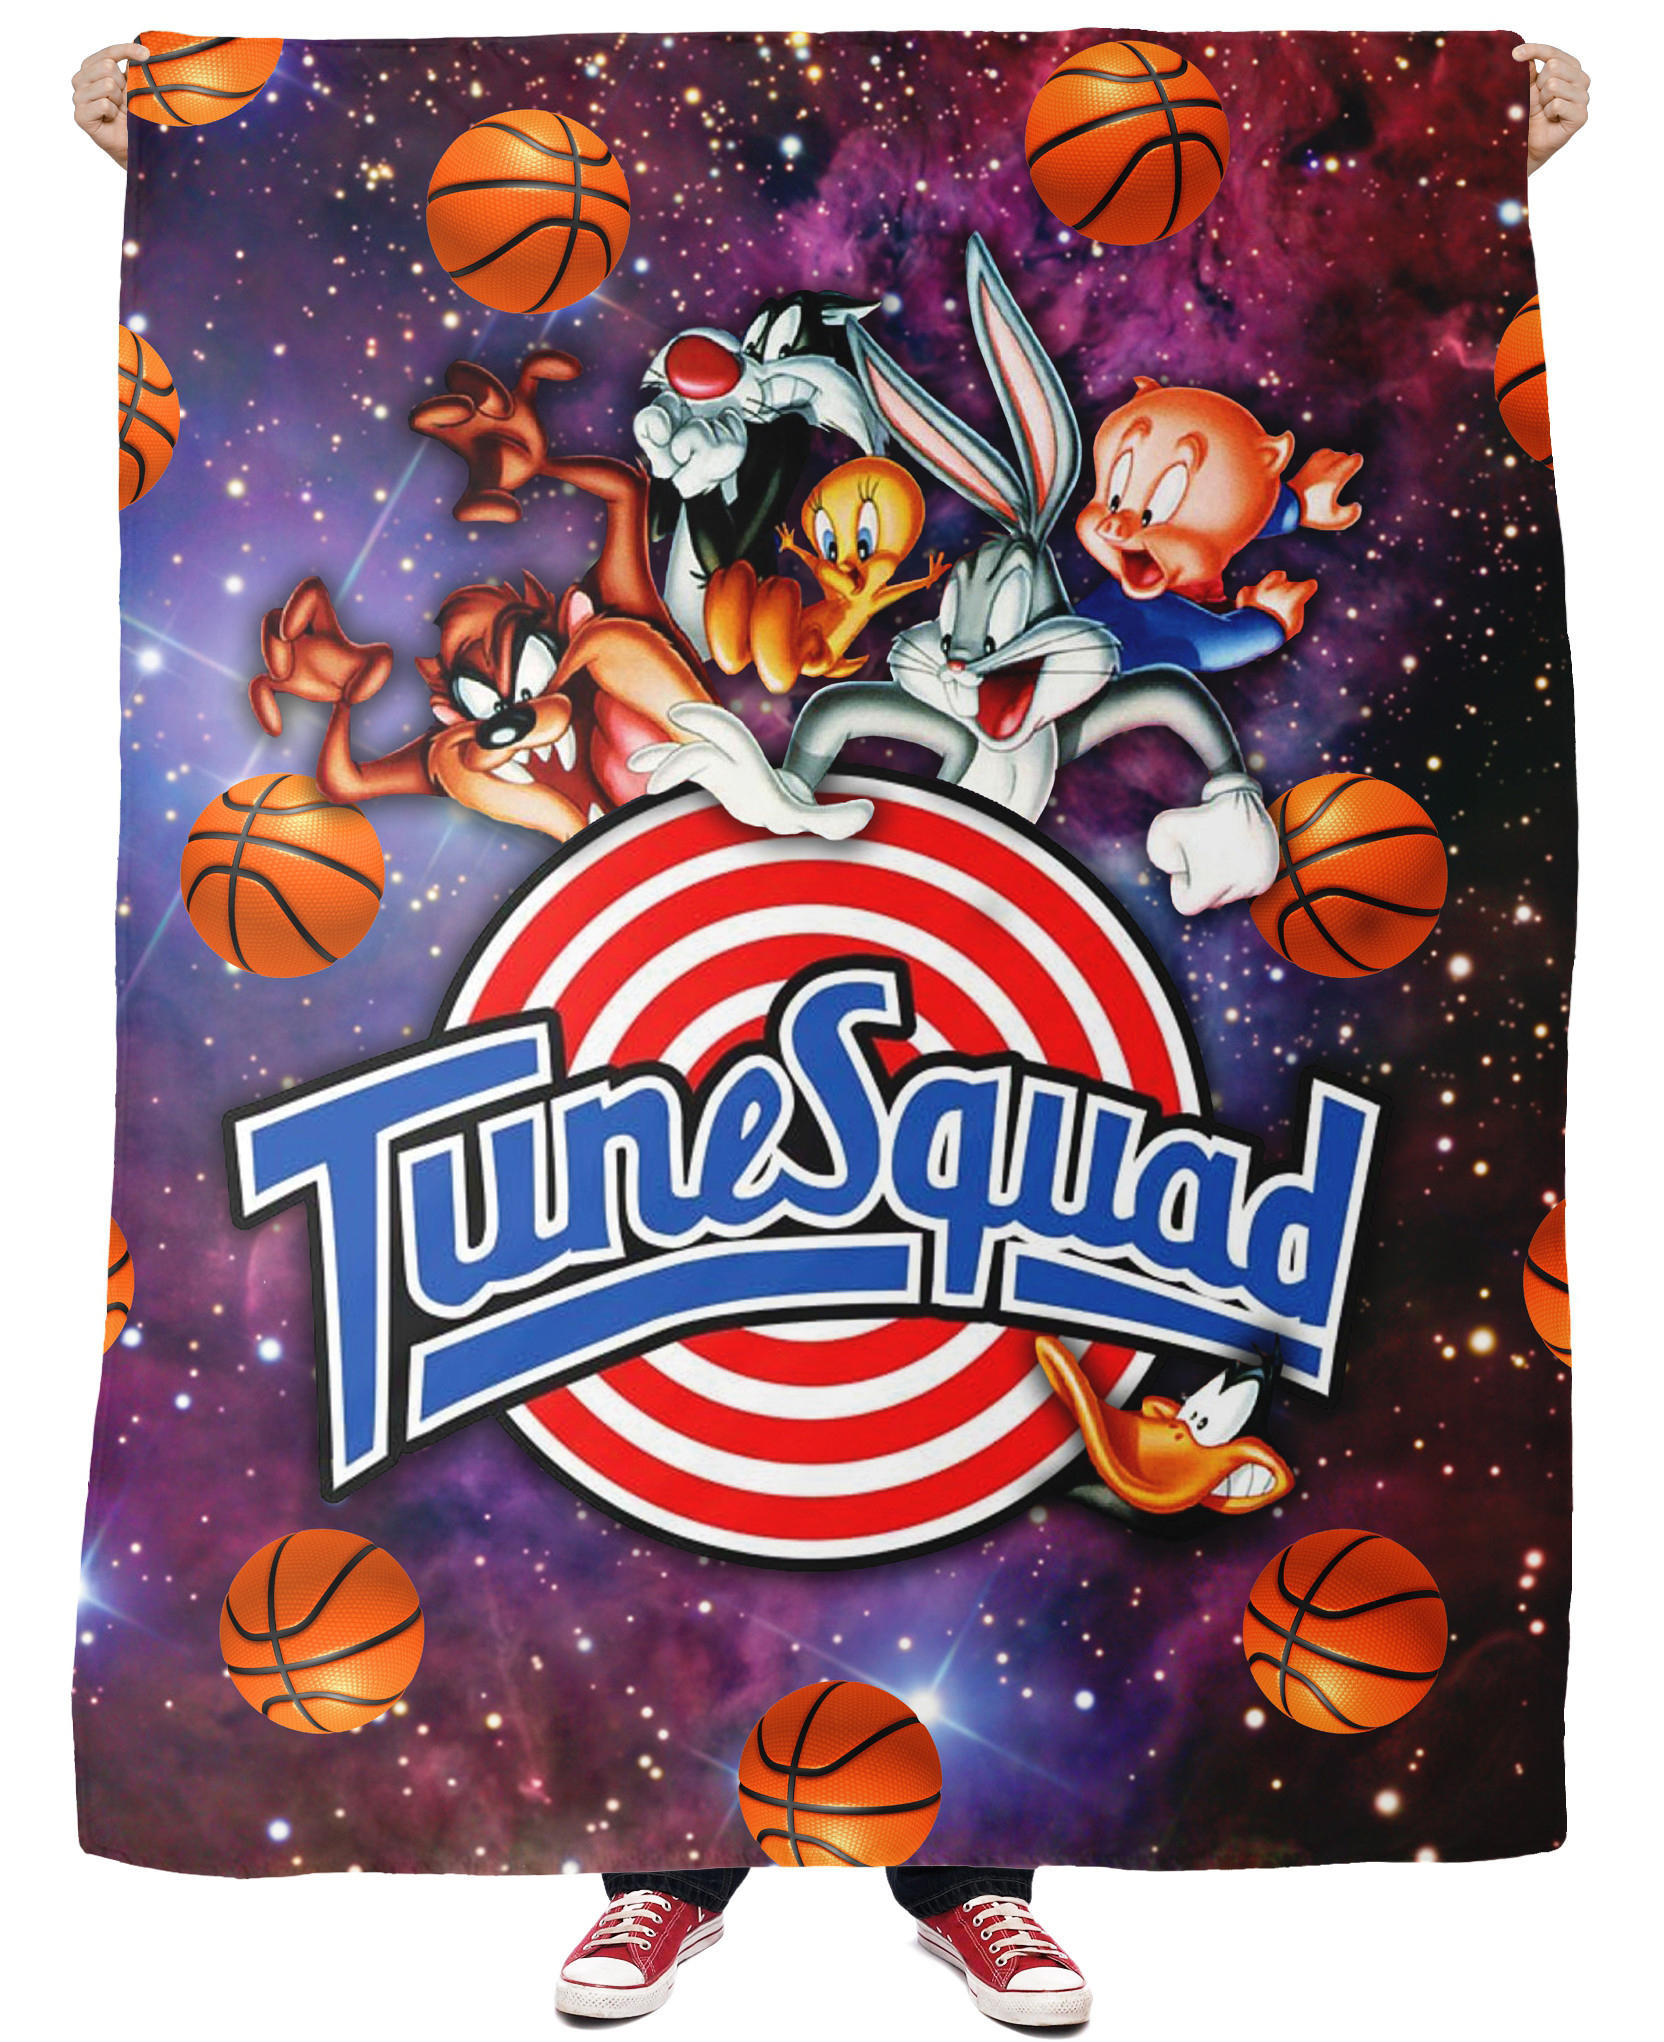 Space Jam Tune Squad Fleece Blanket From Rageon